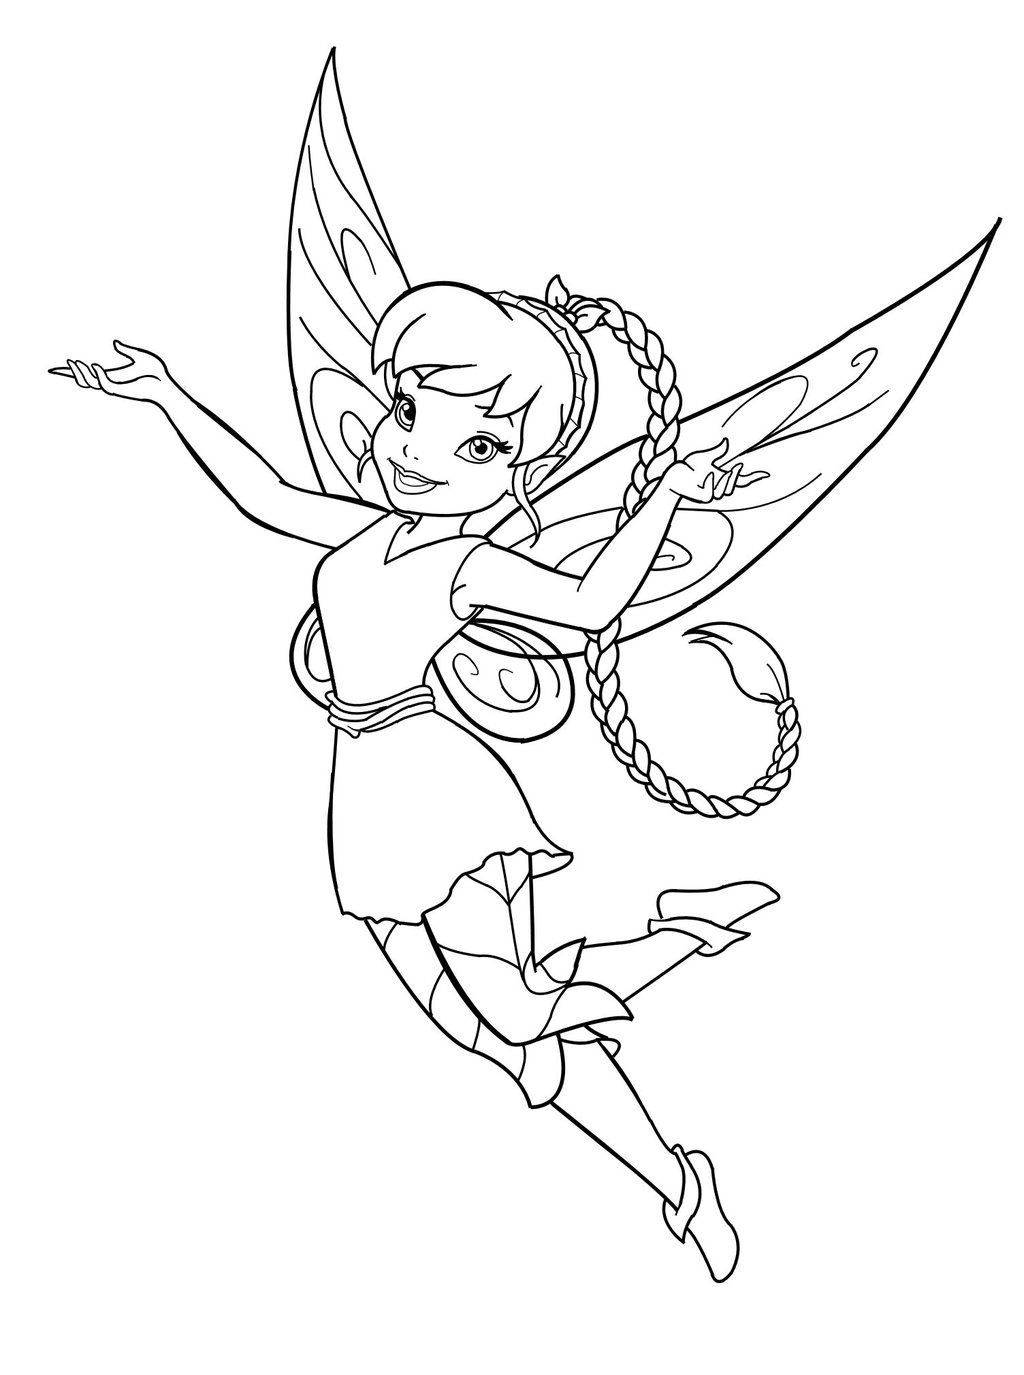 Wonderful Http://www.bestcoloringpagesforkids.com/wp Content/uploads/2014/02/Disney  Fairies Coloring Page